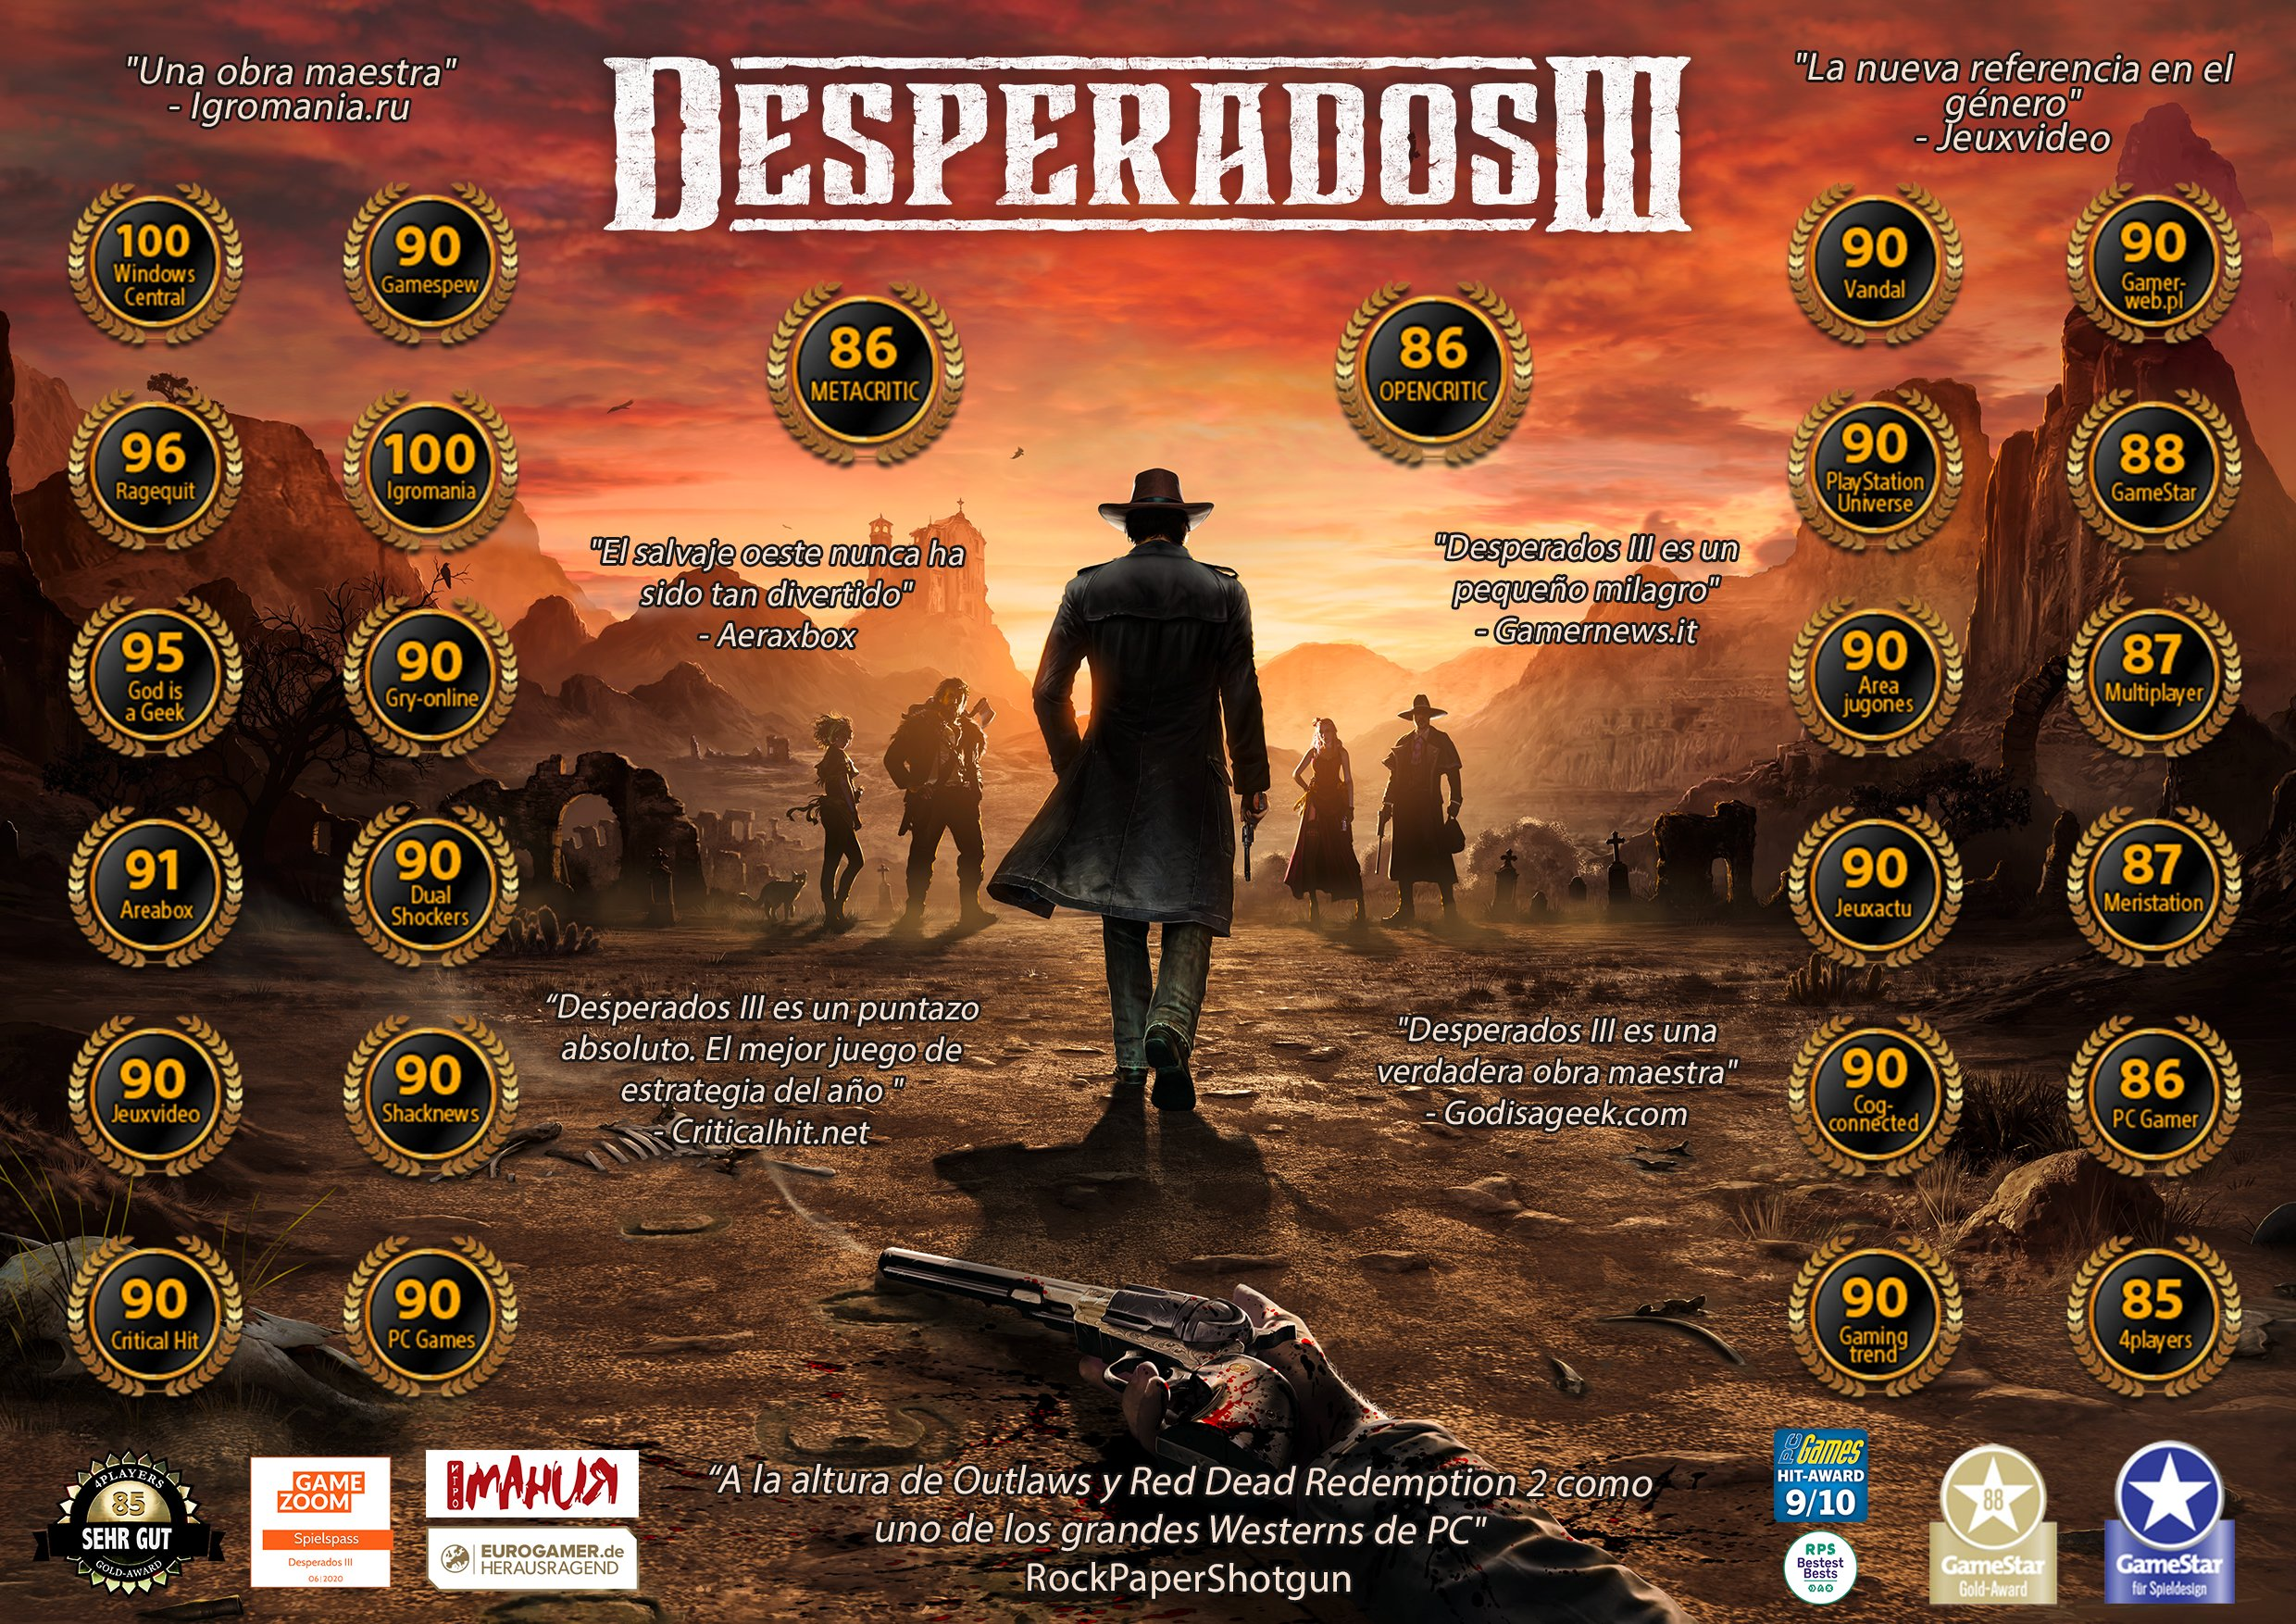 Dispo Desperados 3 Steelbook Jeux Video Steelbook Futurepak Edition Collector Et Jeux Video Ps4 Xbox One Switch